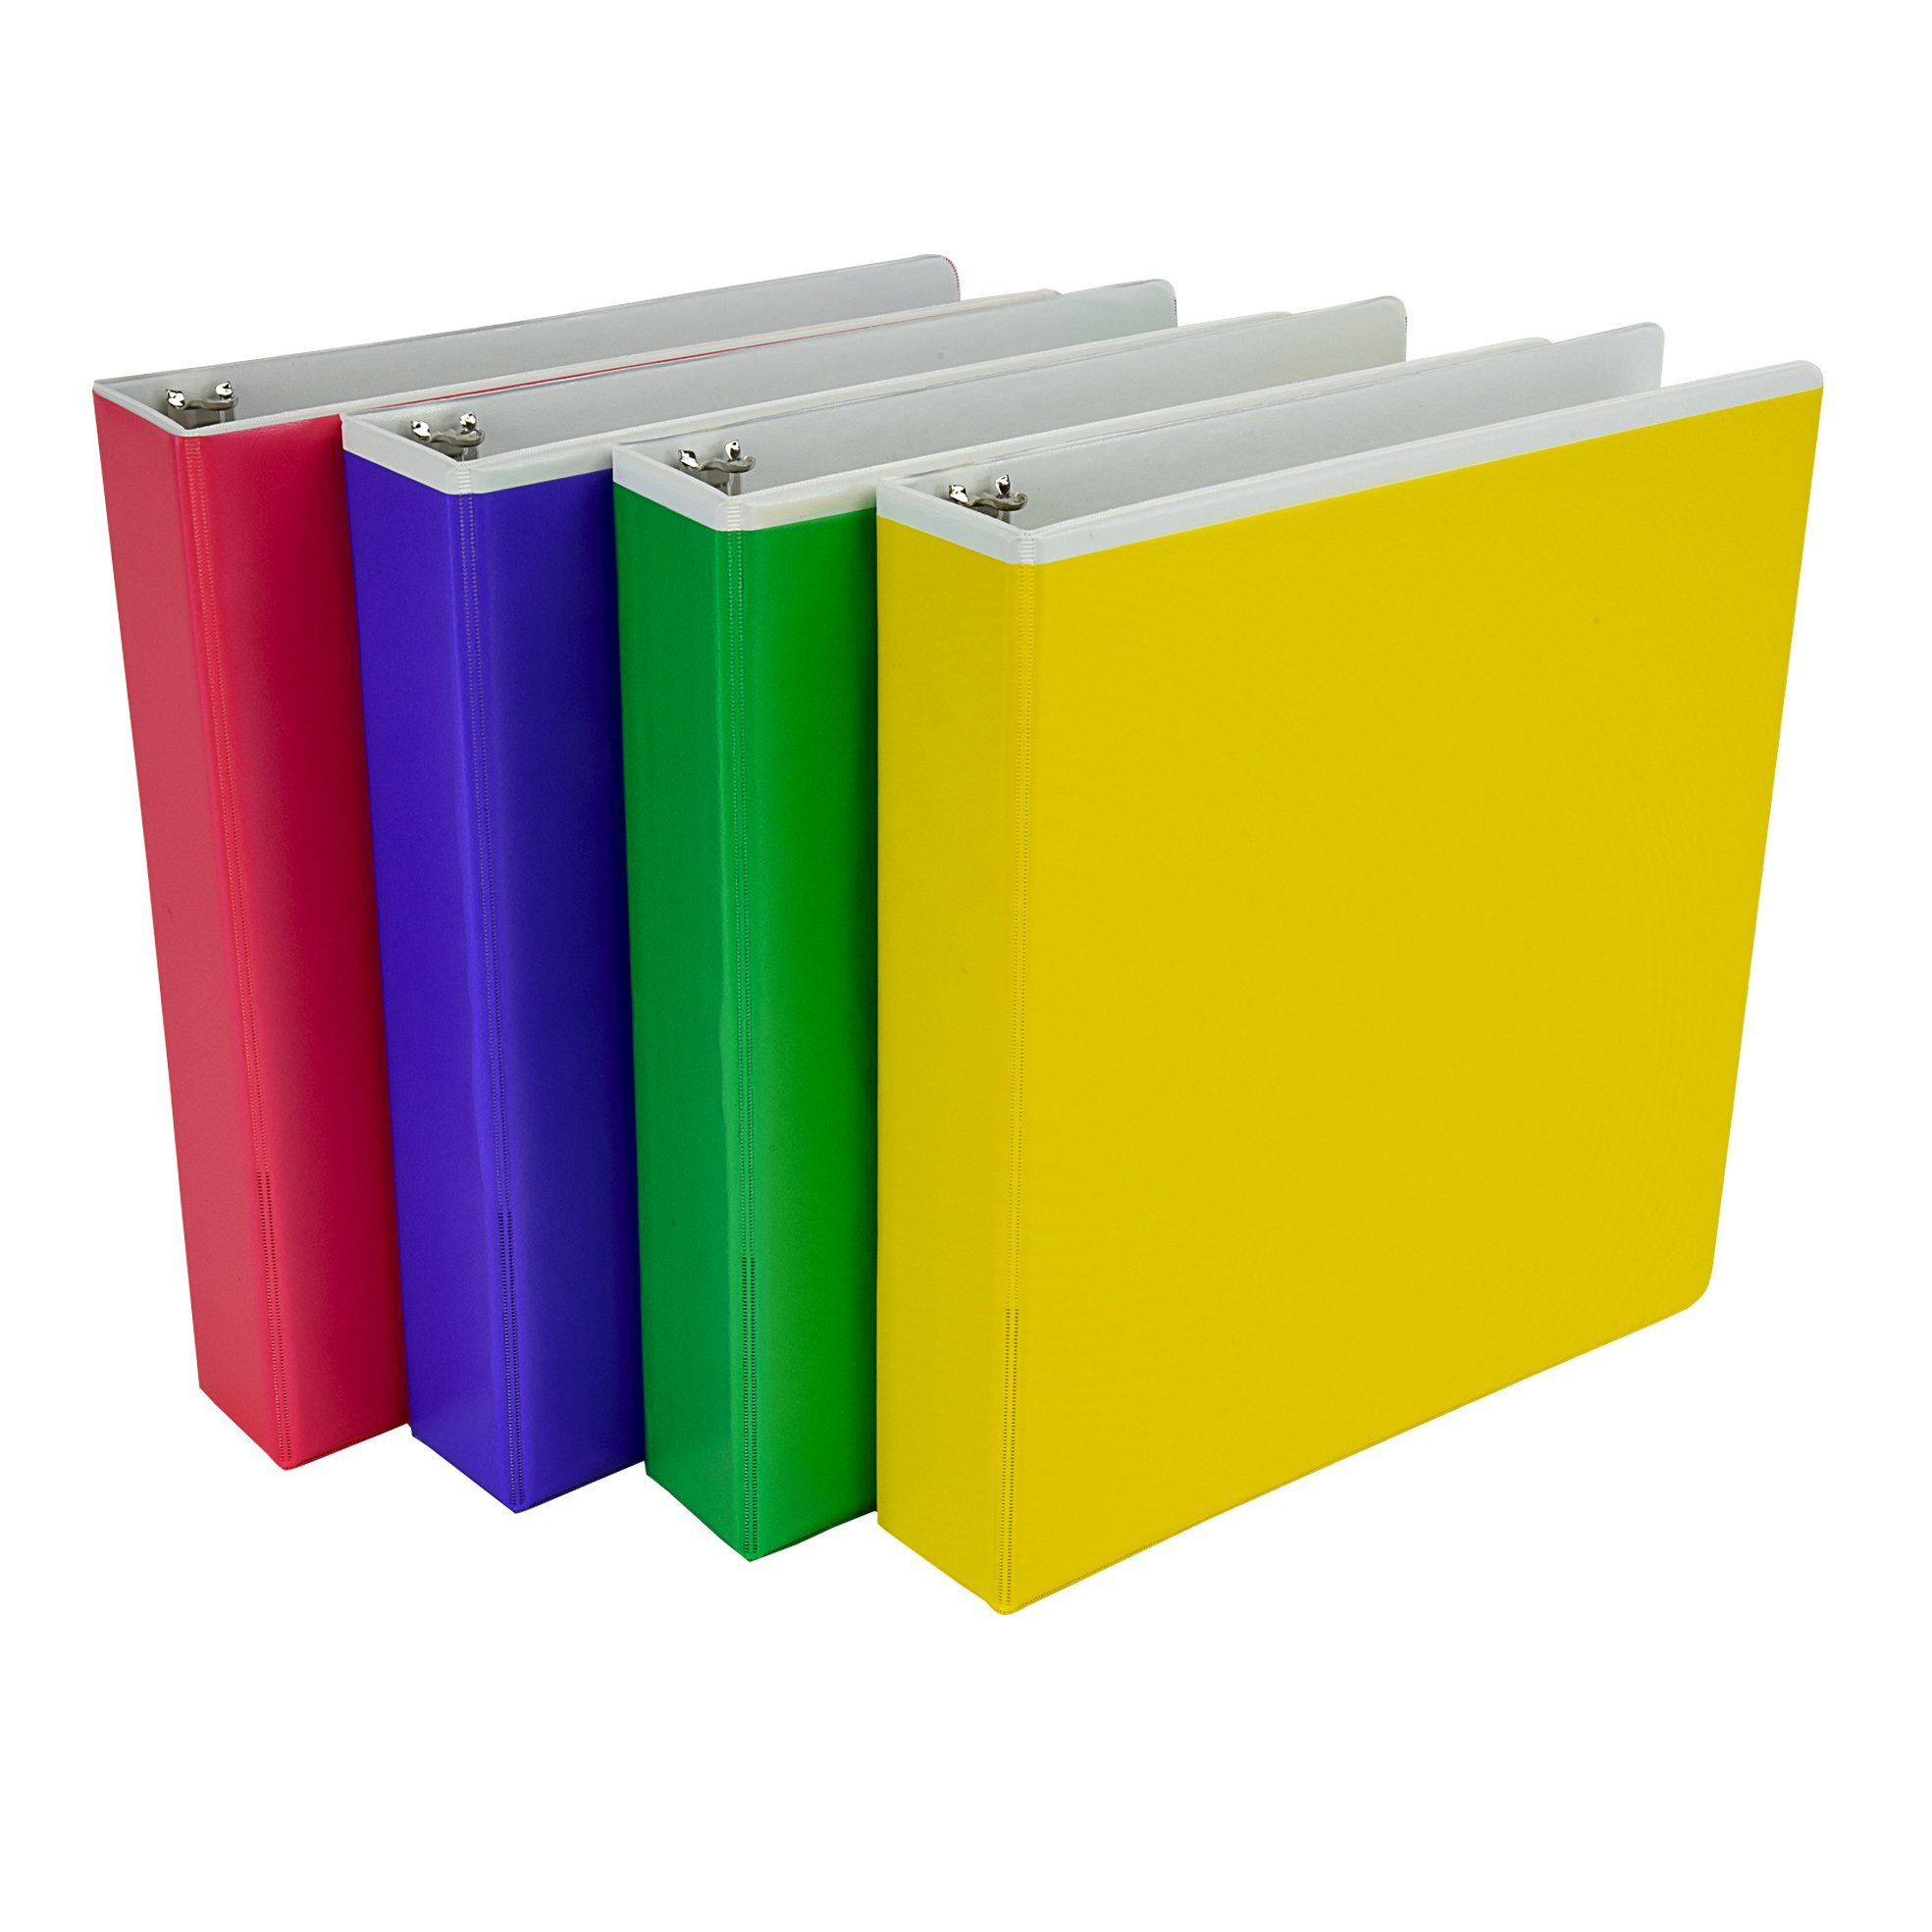 Samsill Fashion Color Pocket Tinted Overlay 3 Ring Binder, 1.5 Inch Round Rings, Customizable, Assorted Colors  (Pink, Purple, Green, Yellow),Bulk Binders - 4 Pack